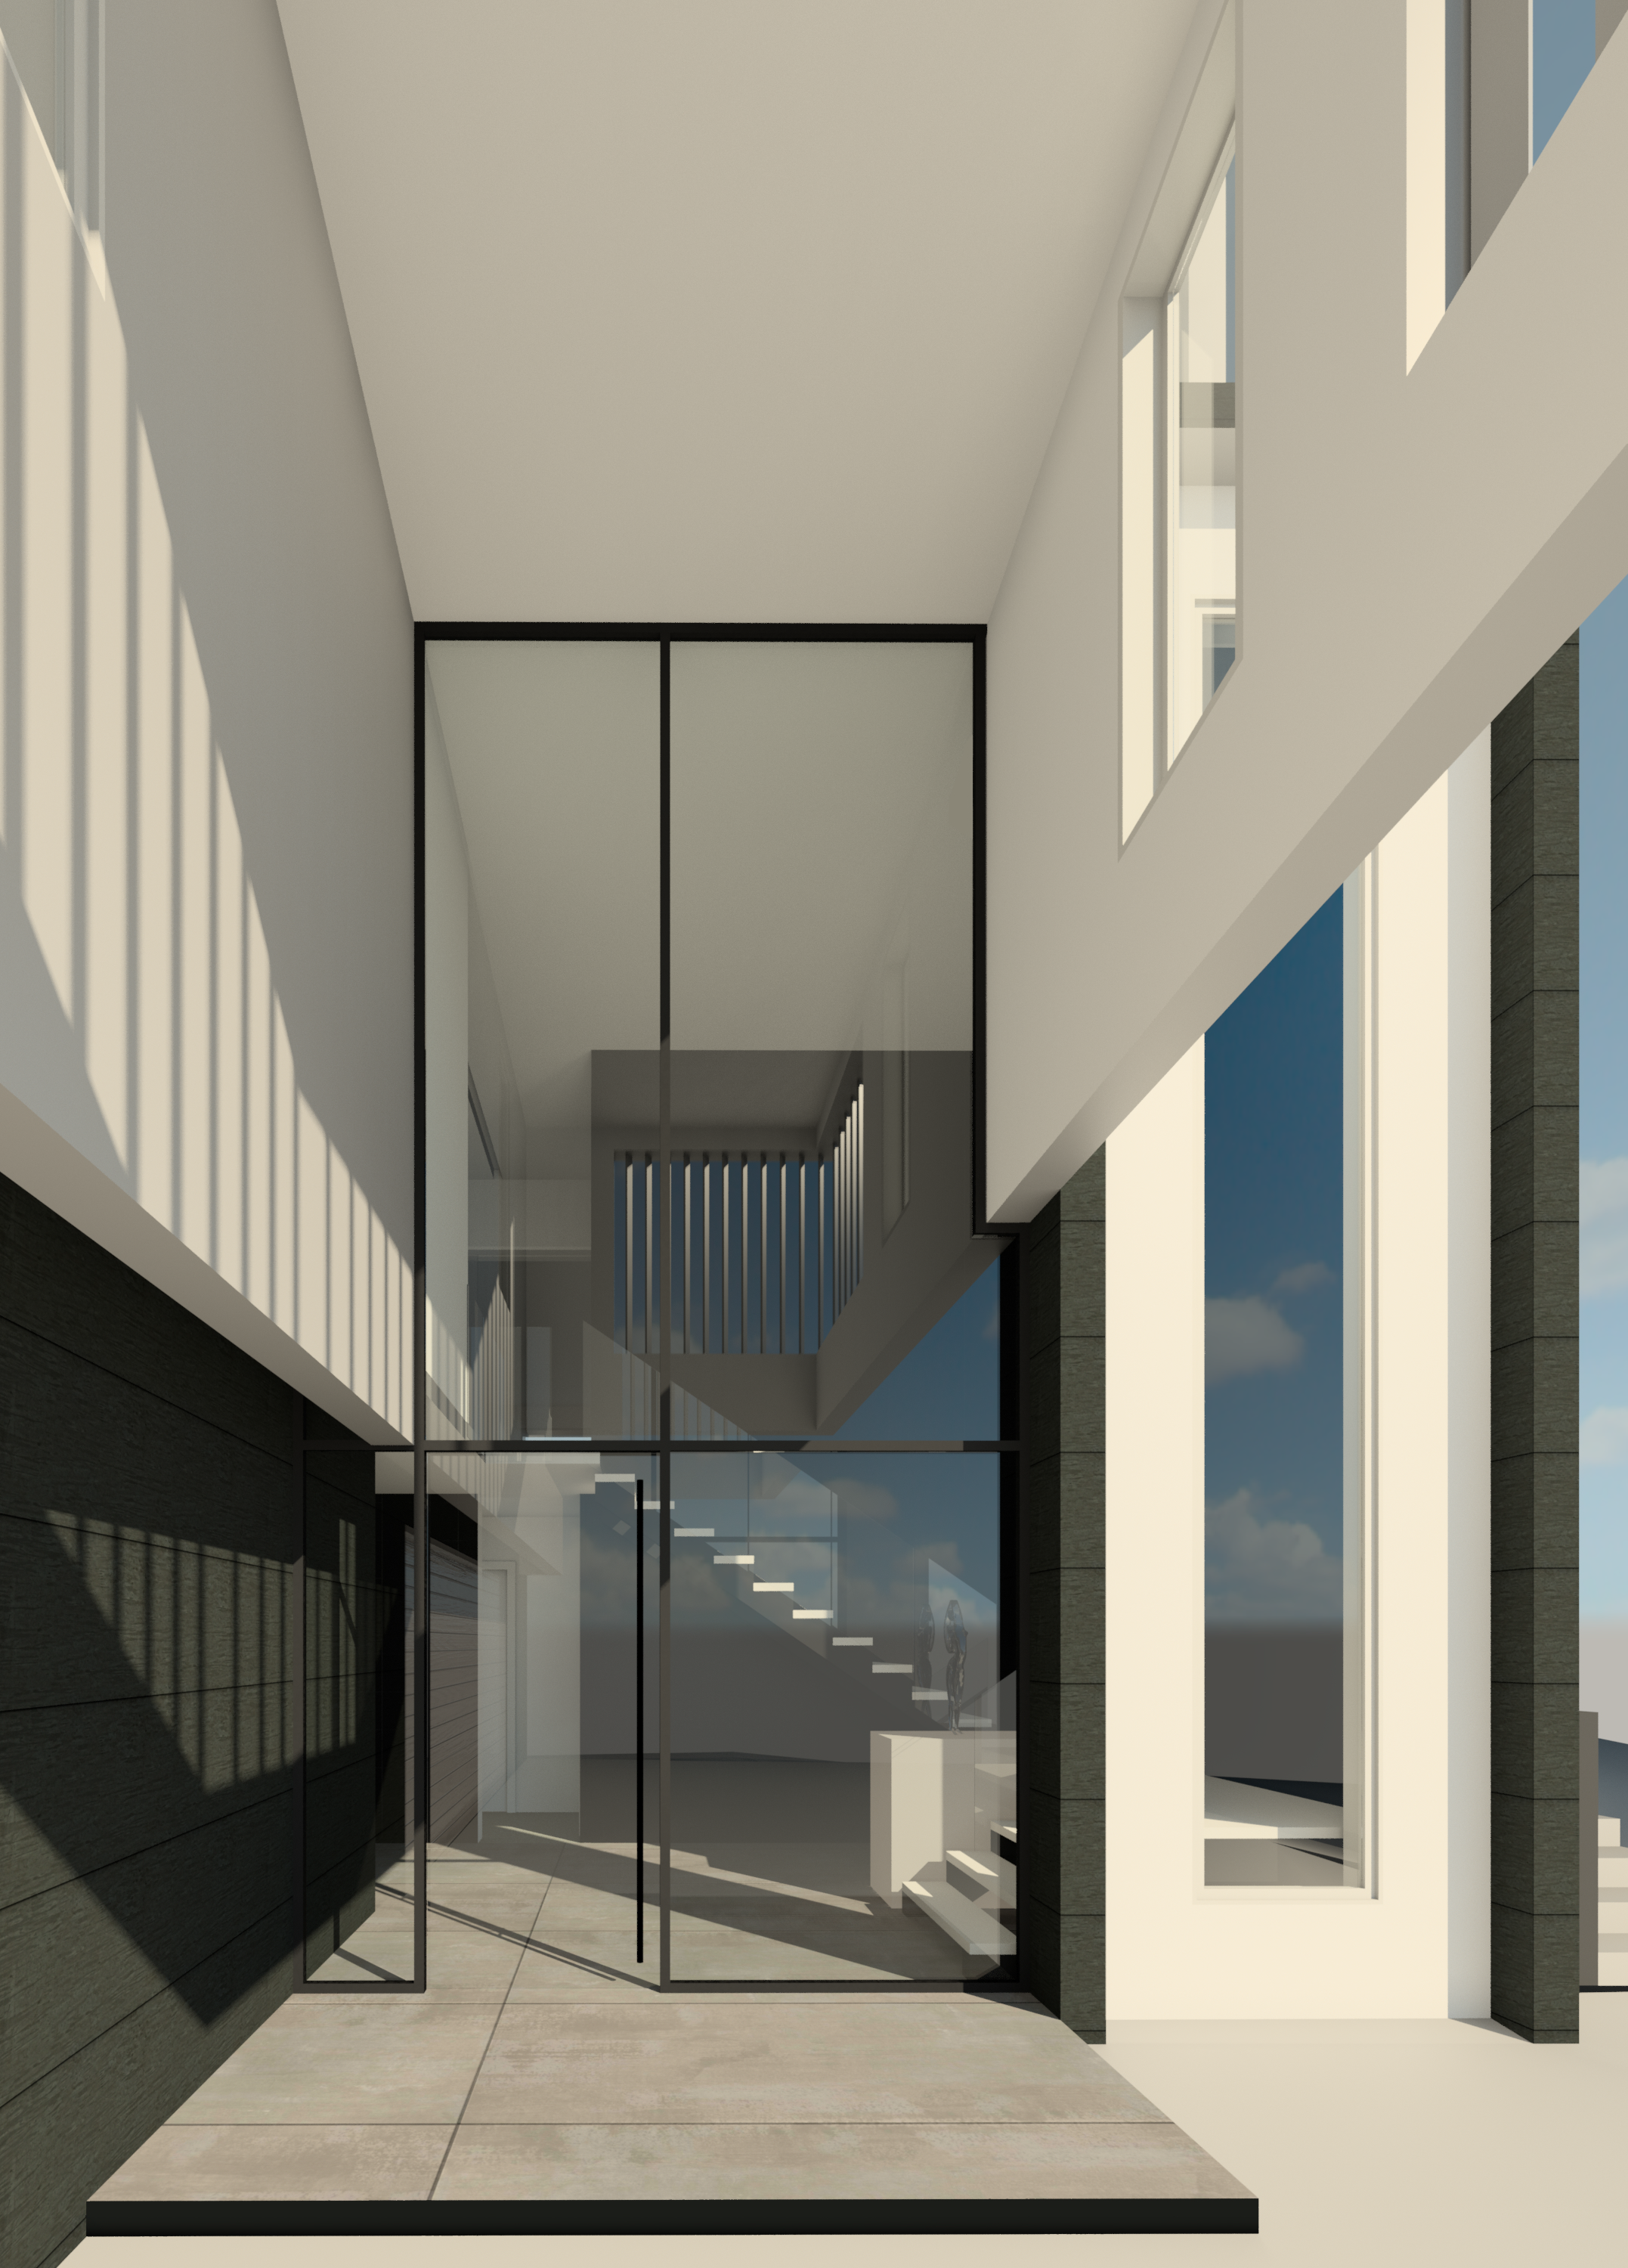 24_Hodgson_3D_View_-_ENTRANCE_STAIR.png